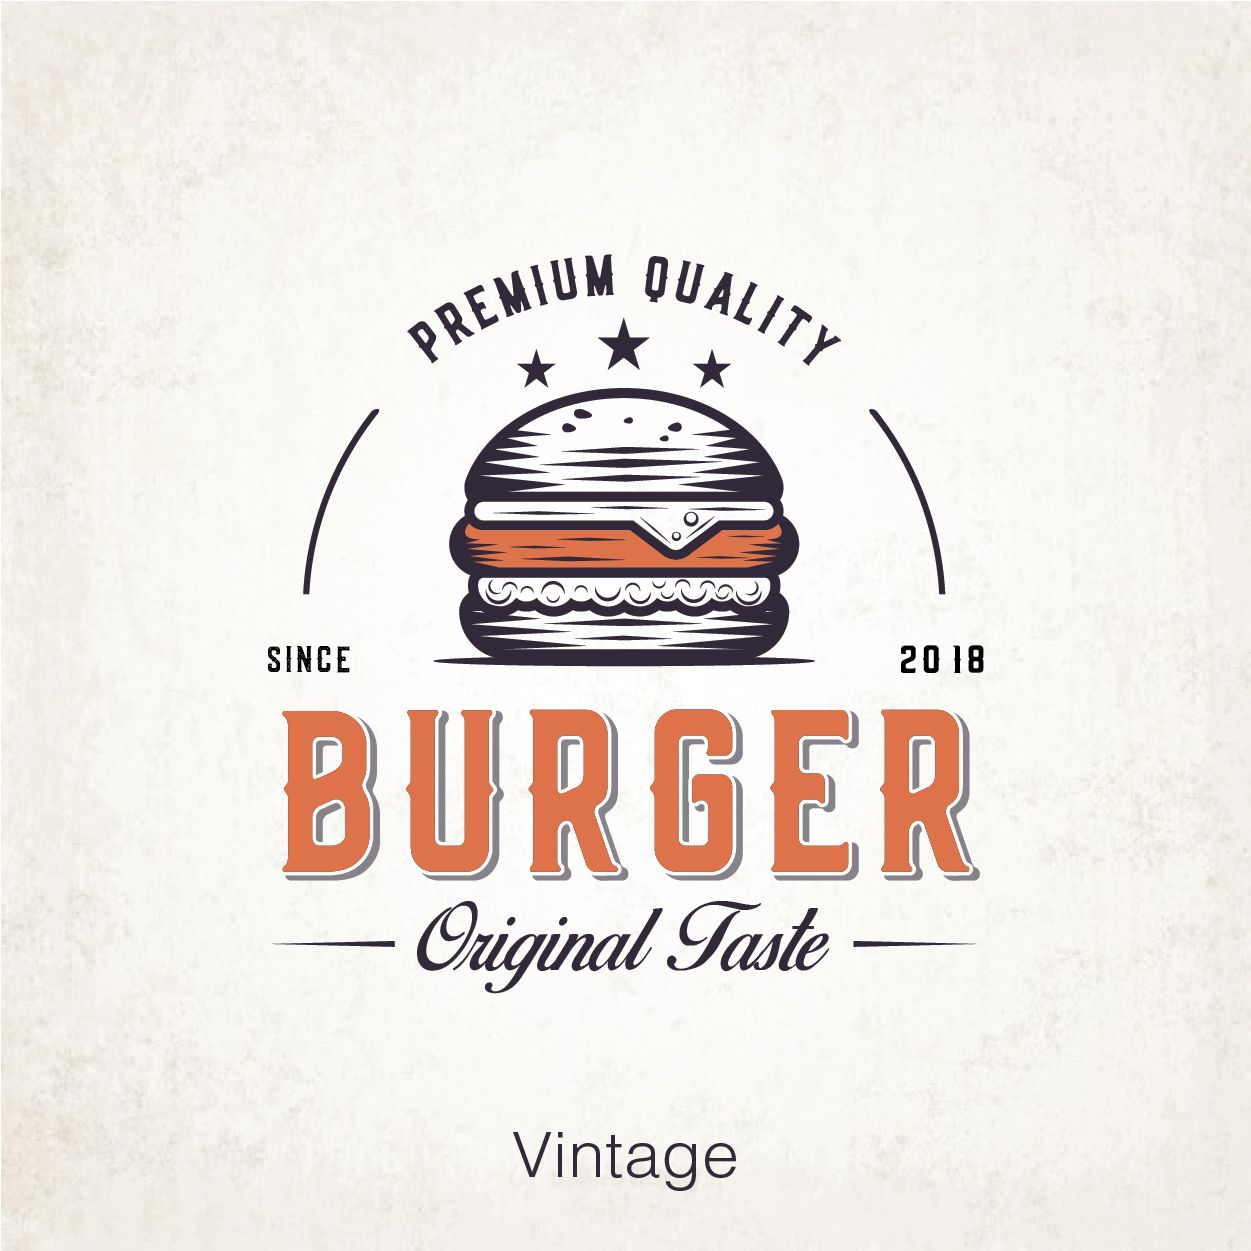 Fast food burger Retro logo, old graphic vintage style